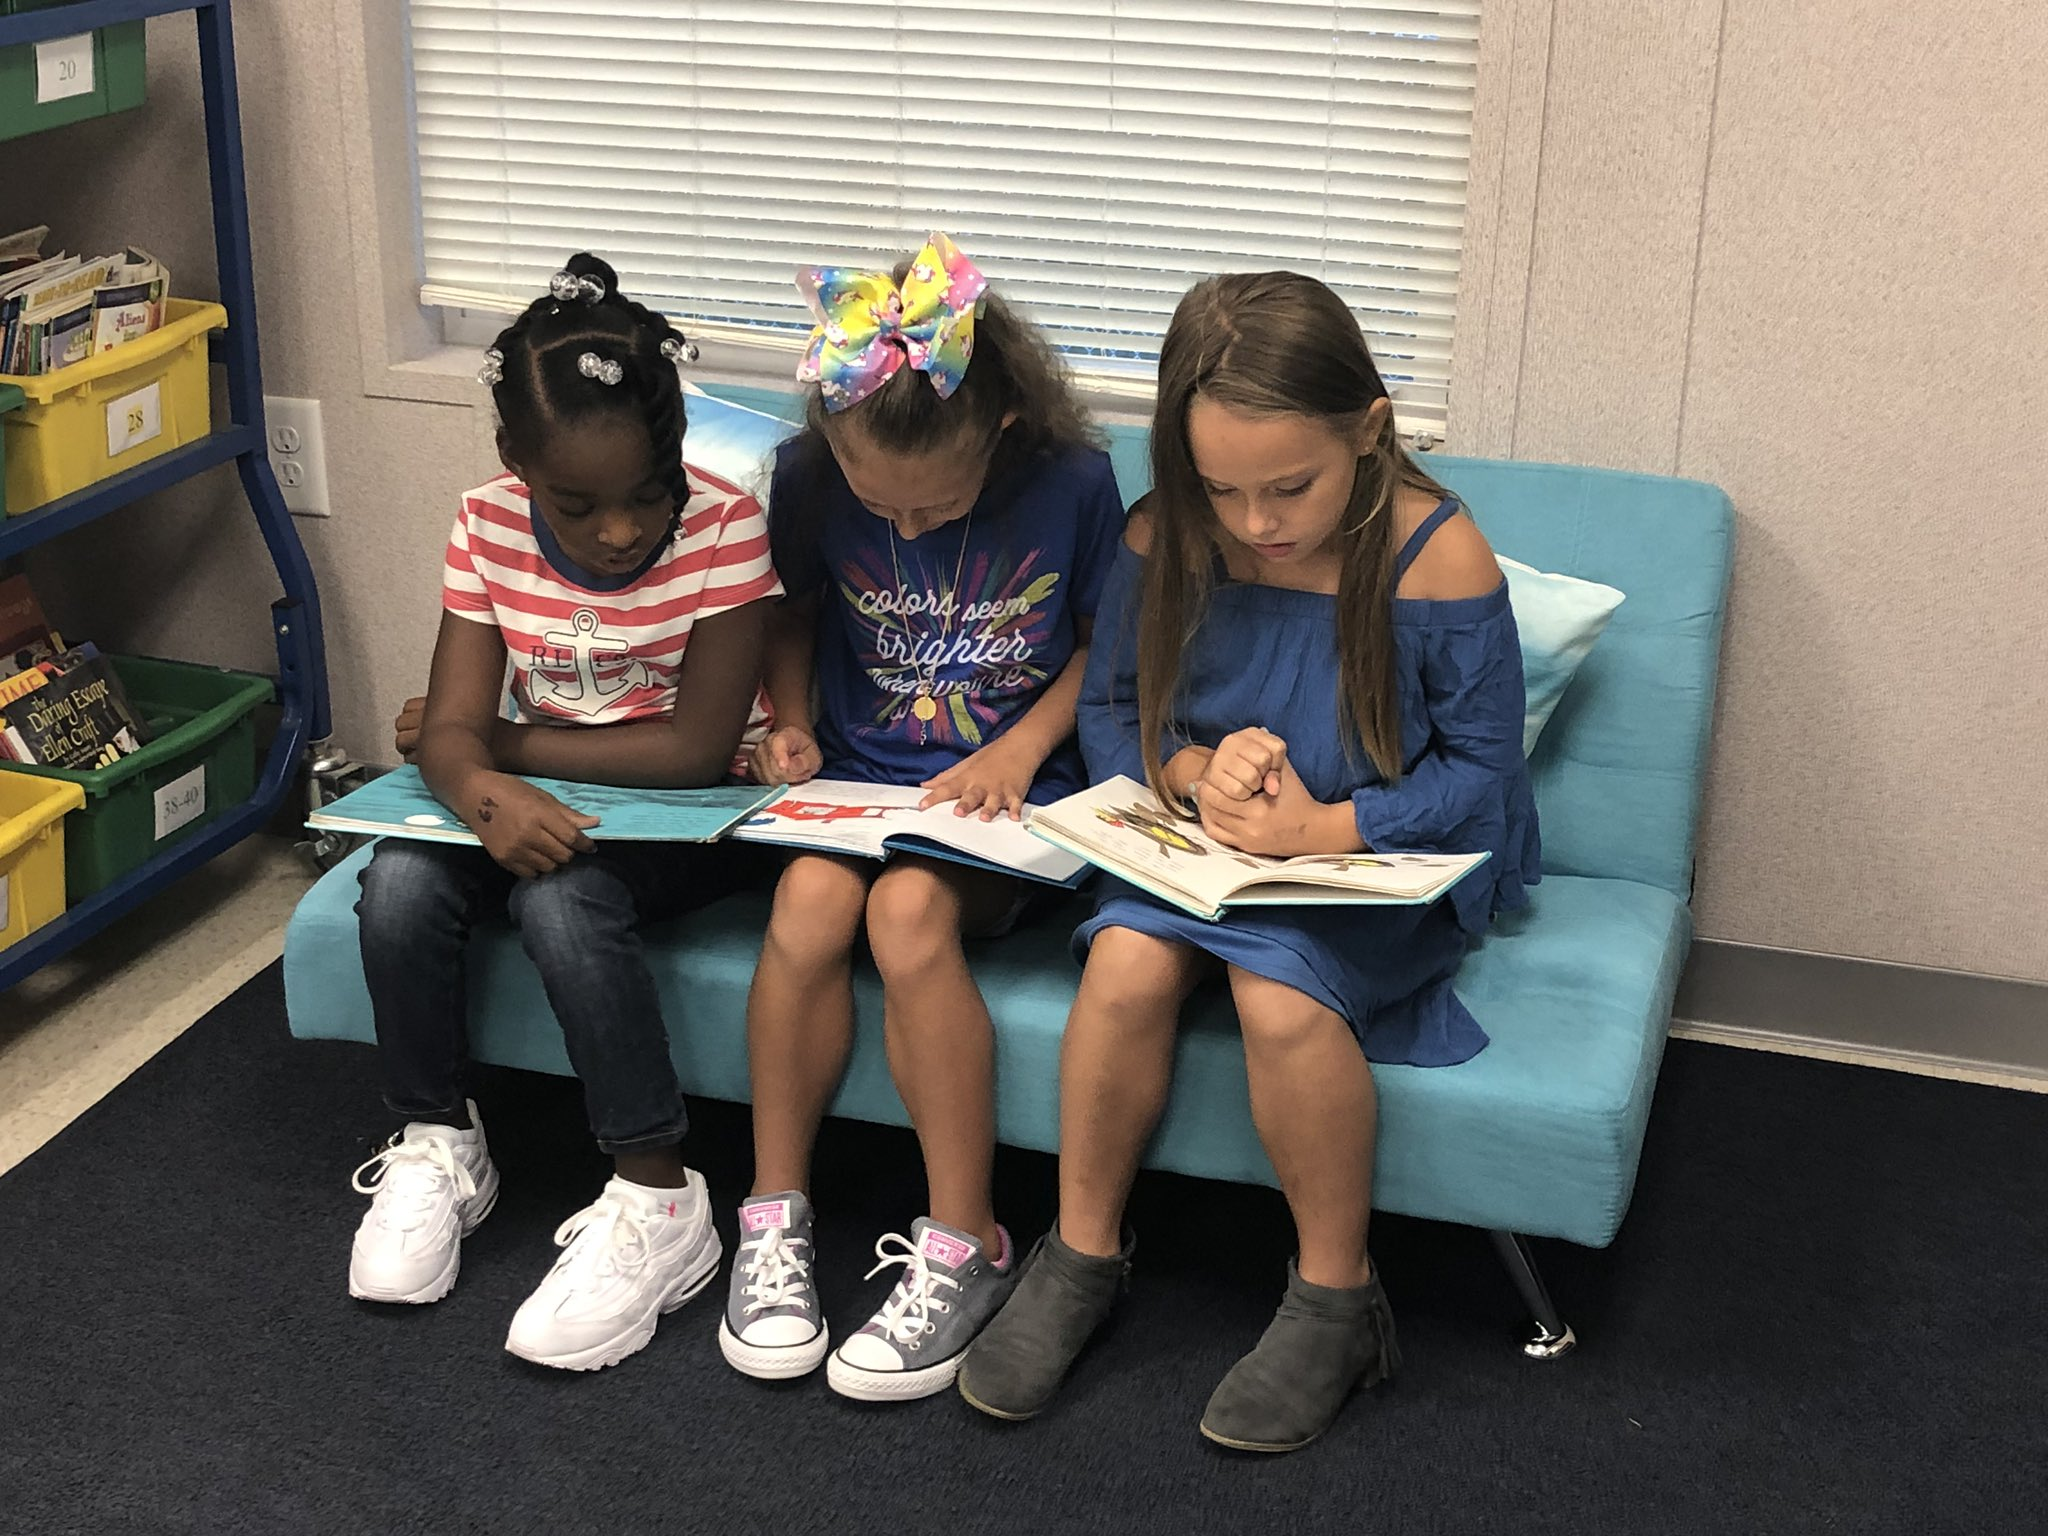 Three students sitting on a sofa reading their books.